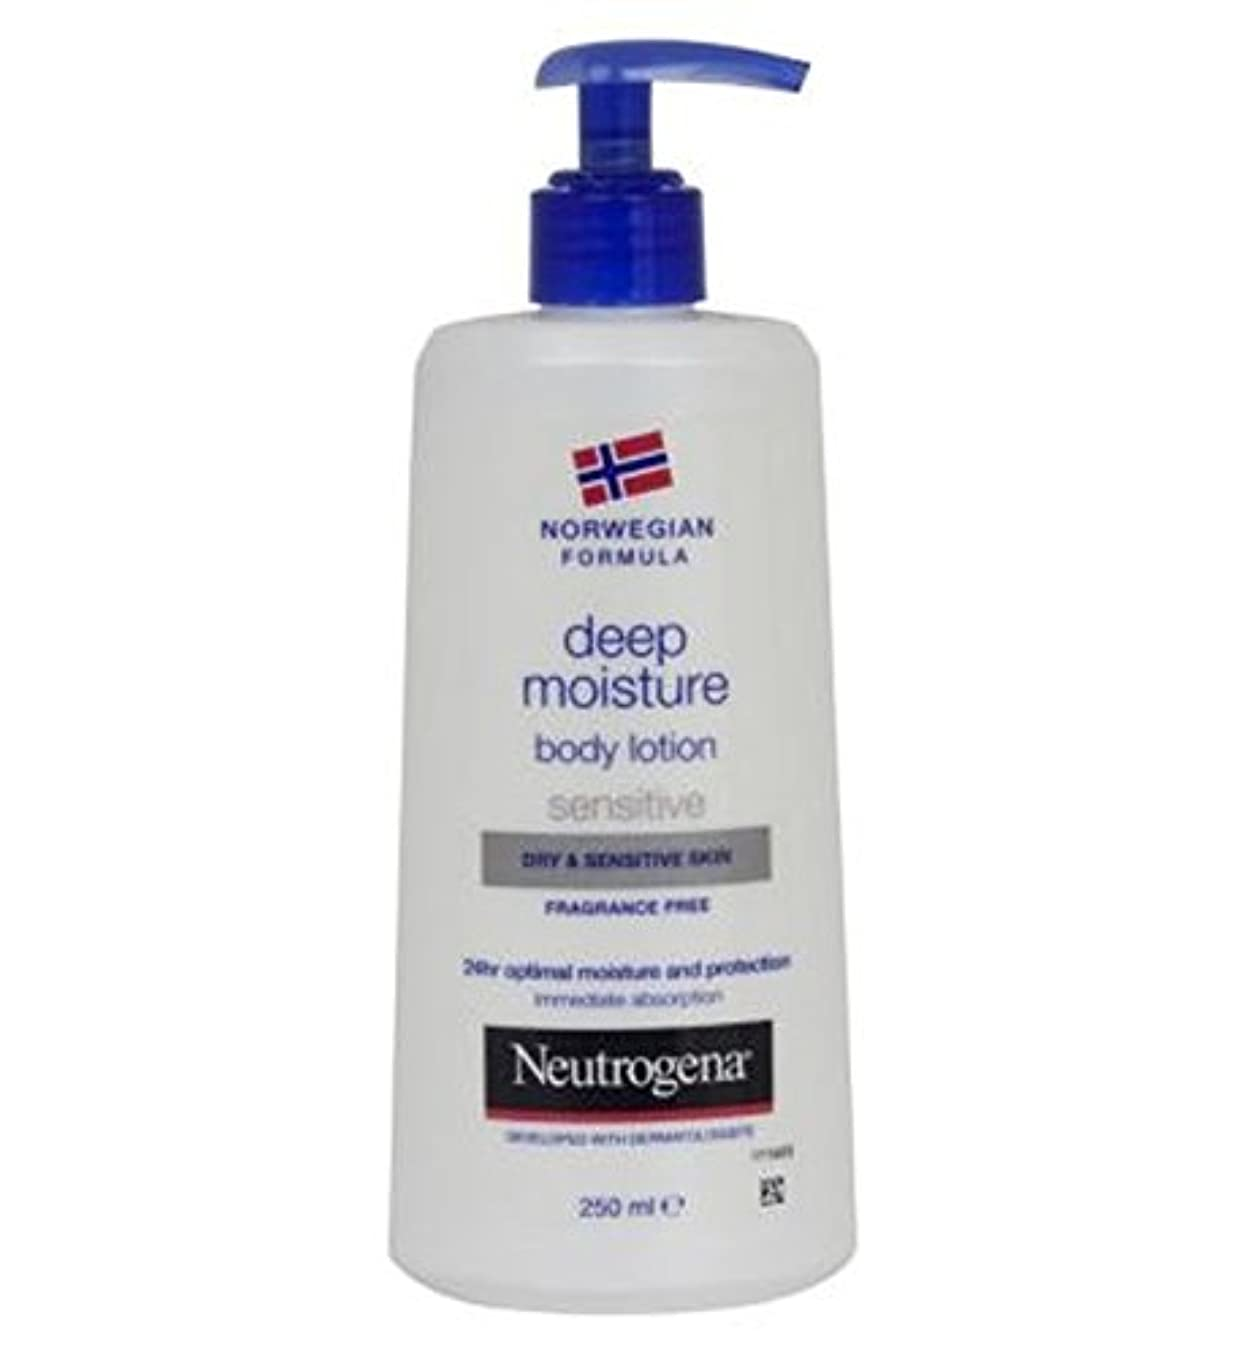 表向きビザ真っ逆さまNeutrogena Norwegian Formula Deep Moistuire Body Lotion Sensitive For Dry & Sensitive Skin 250ml - ドライ&敏感肌用250...